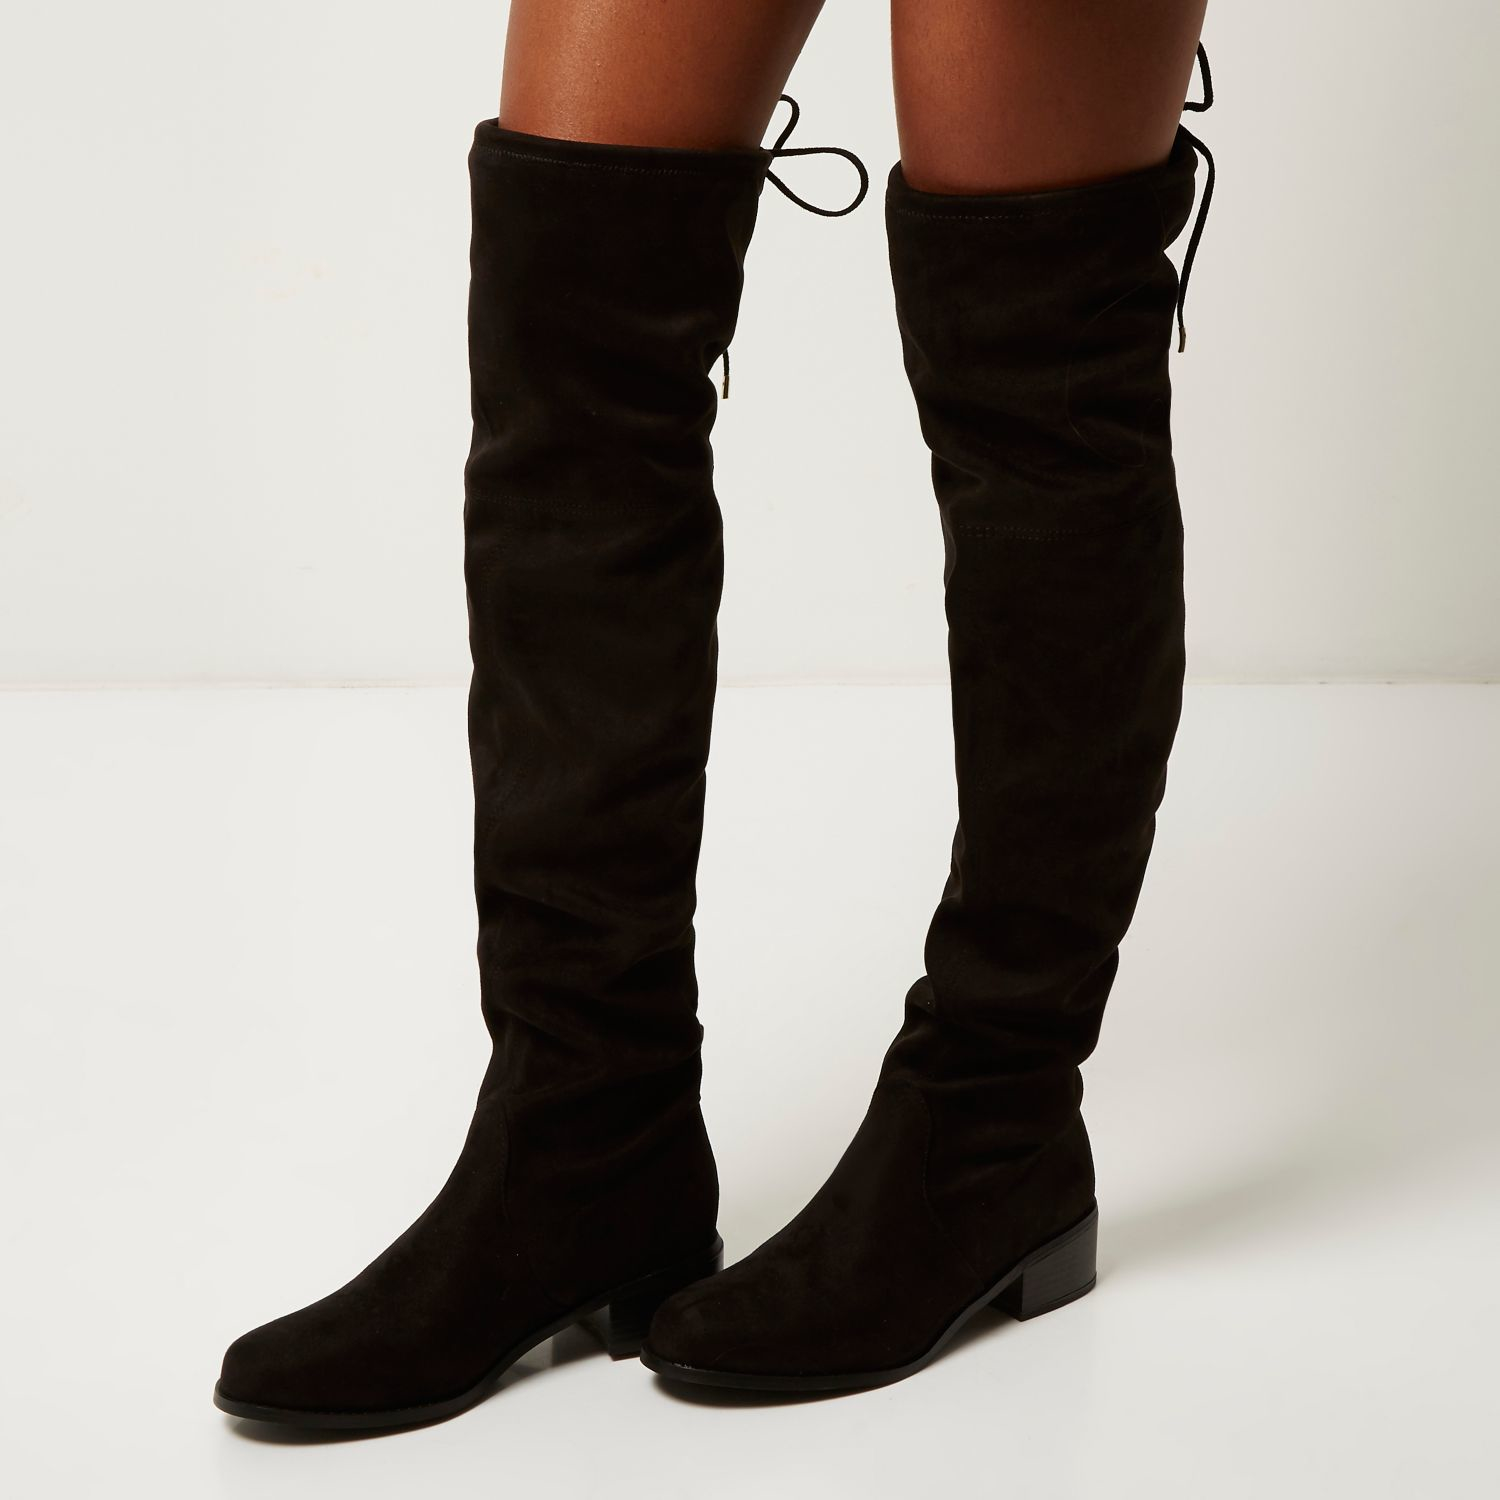 b5c6c8db73c Lyst - River Island Black Tie Back Over The Knee Boots in Black